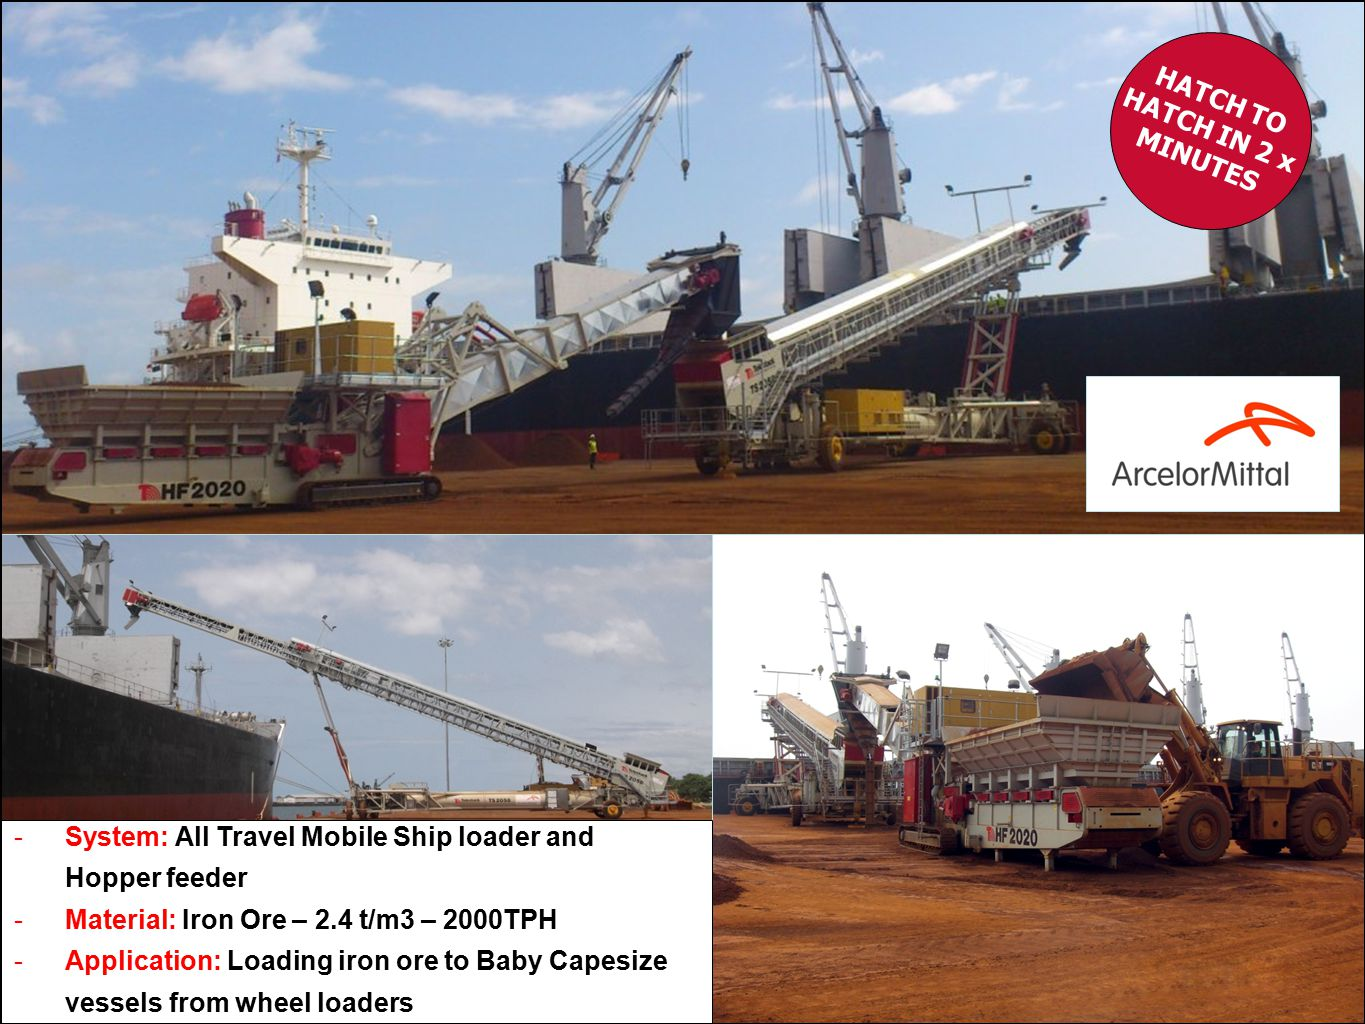 -System: All Travel Mobile Ship loader and Hopper feeder -Material: Iron Ore – 2.4 t/m3 – 2000TPH -Application: Loading iron ore to Baby Capesize vessels from wheel loaders HATCH TO HATCH IN 2 x MINUTES